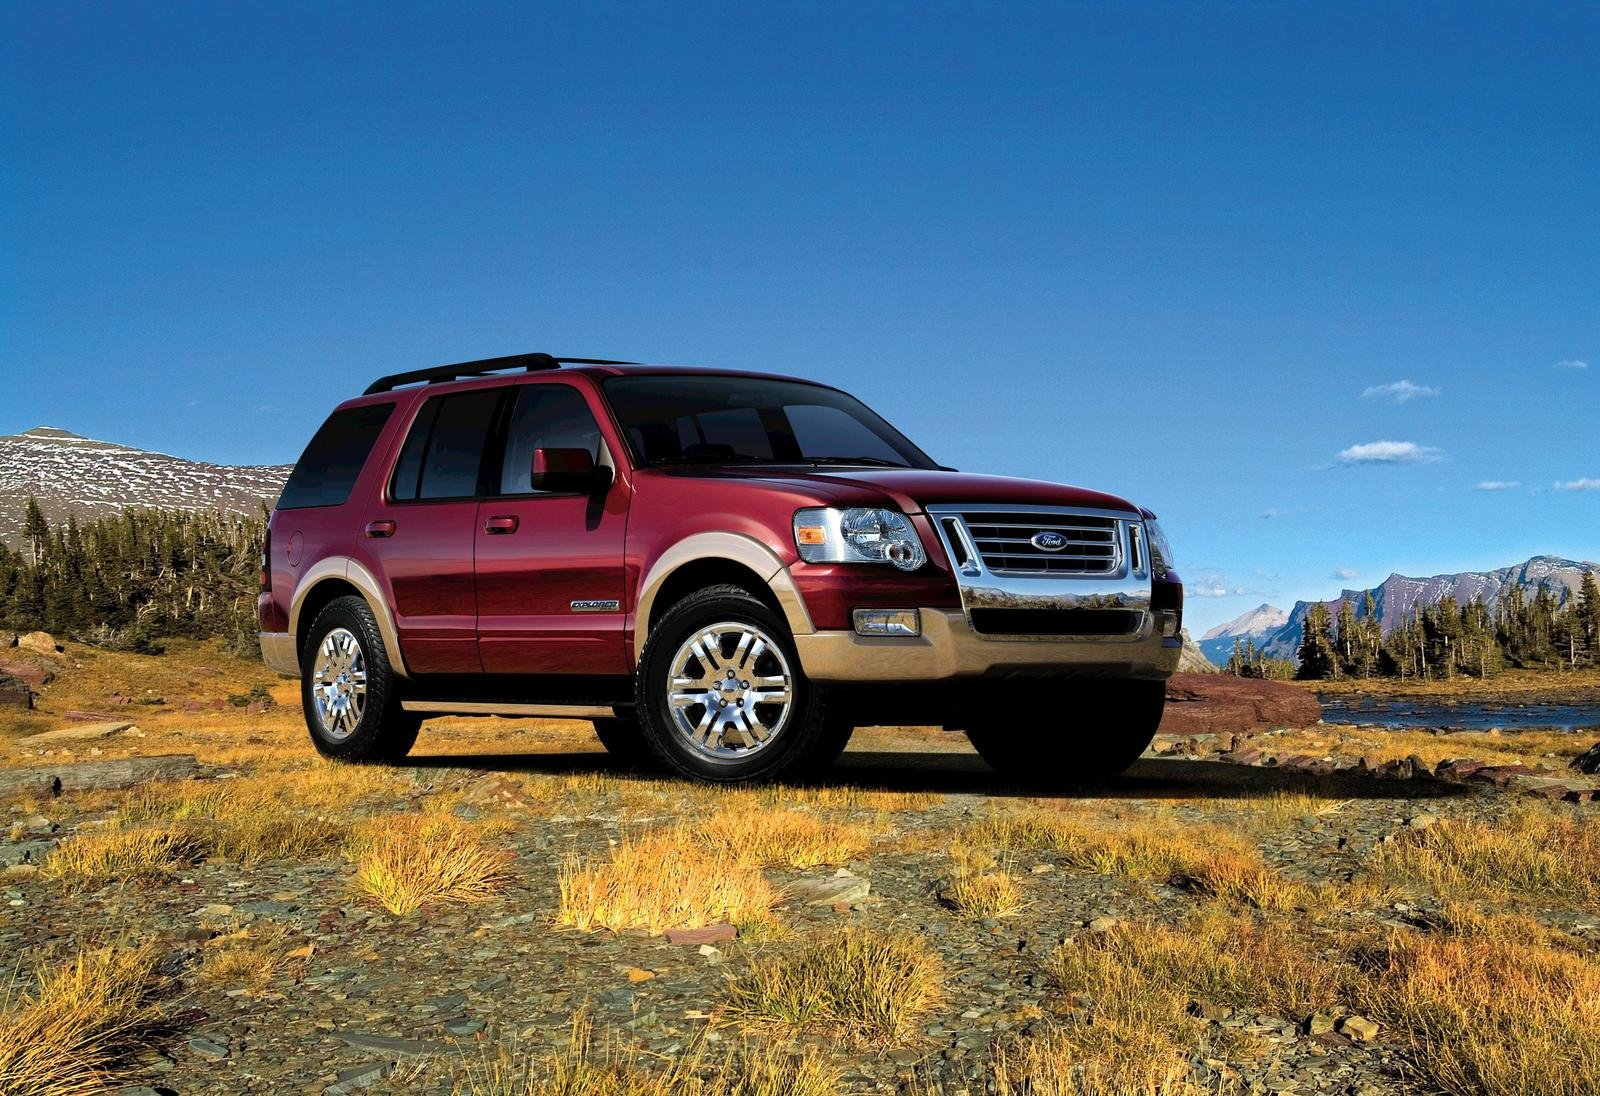 Ford Louisville Ky >> 2008 Ford Explorer Review - Top Speed